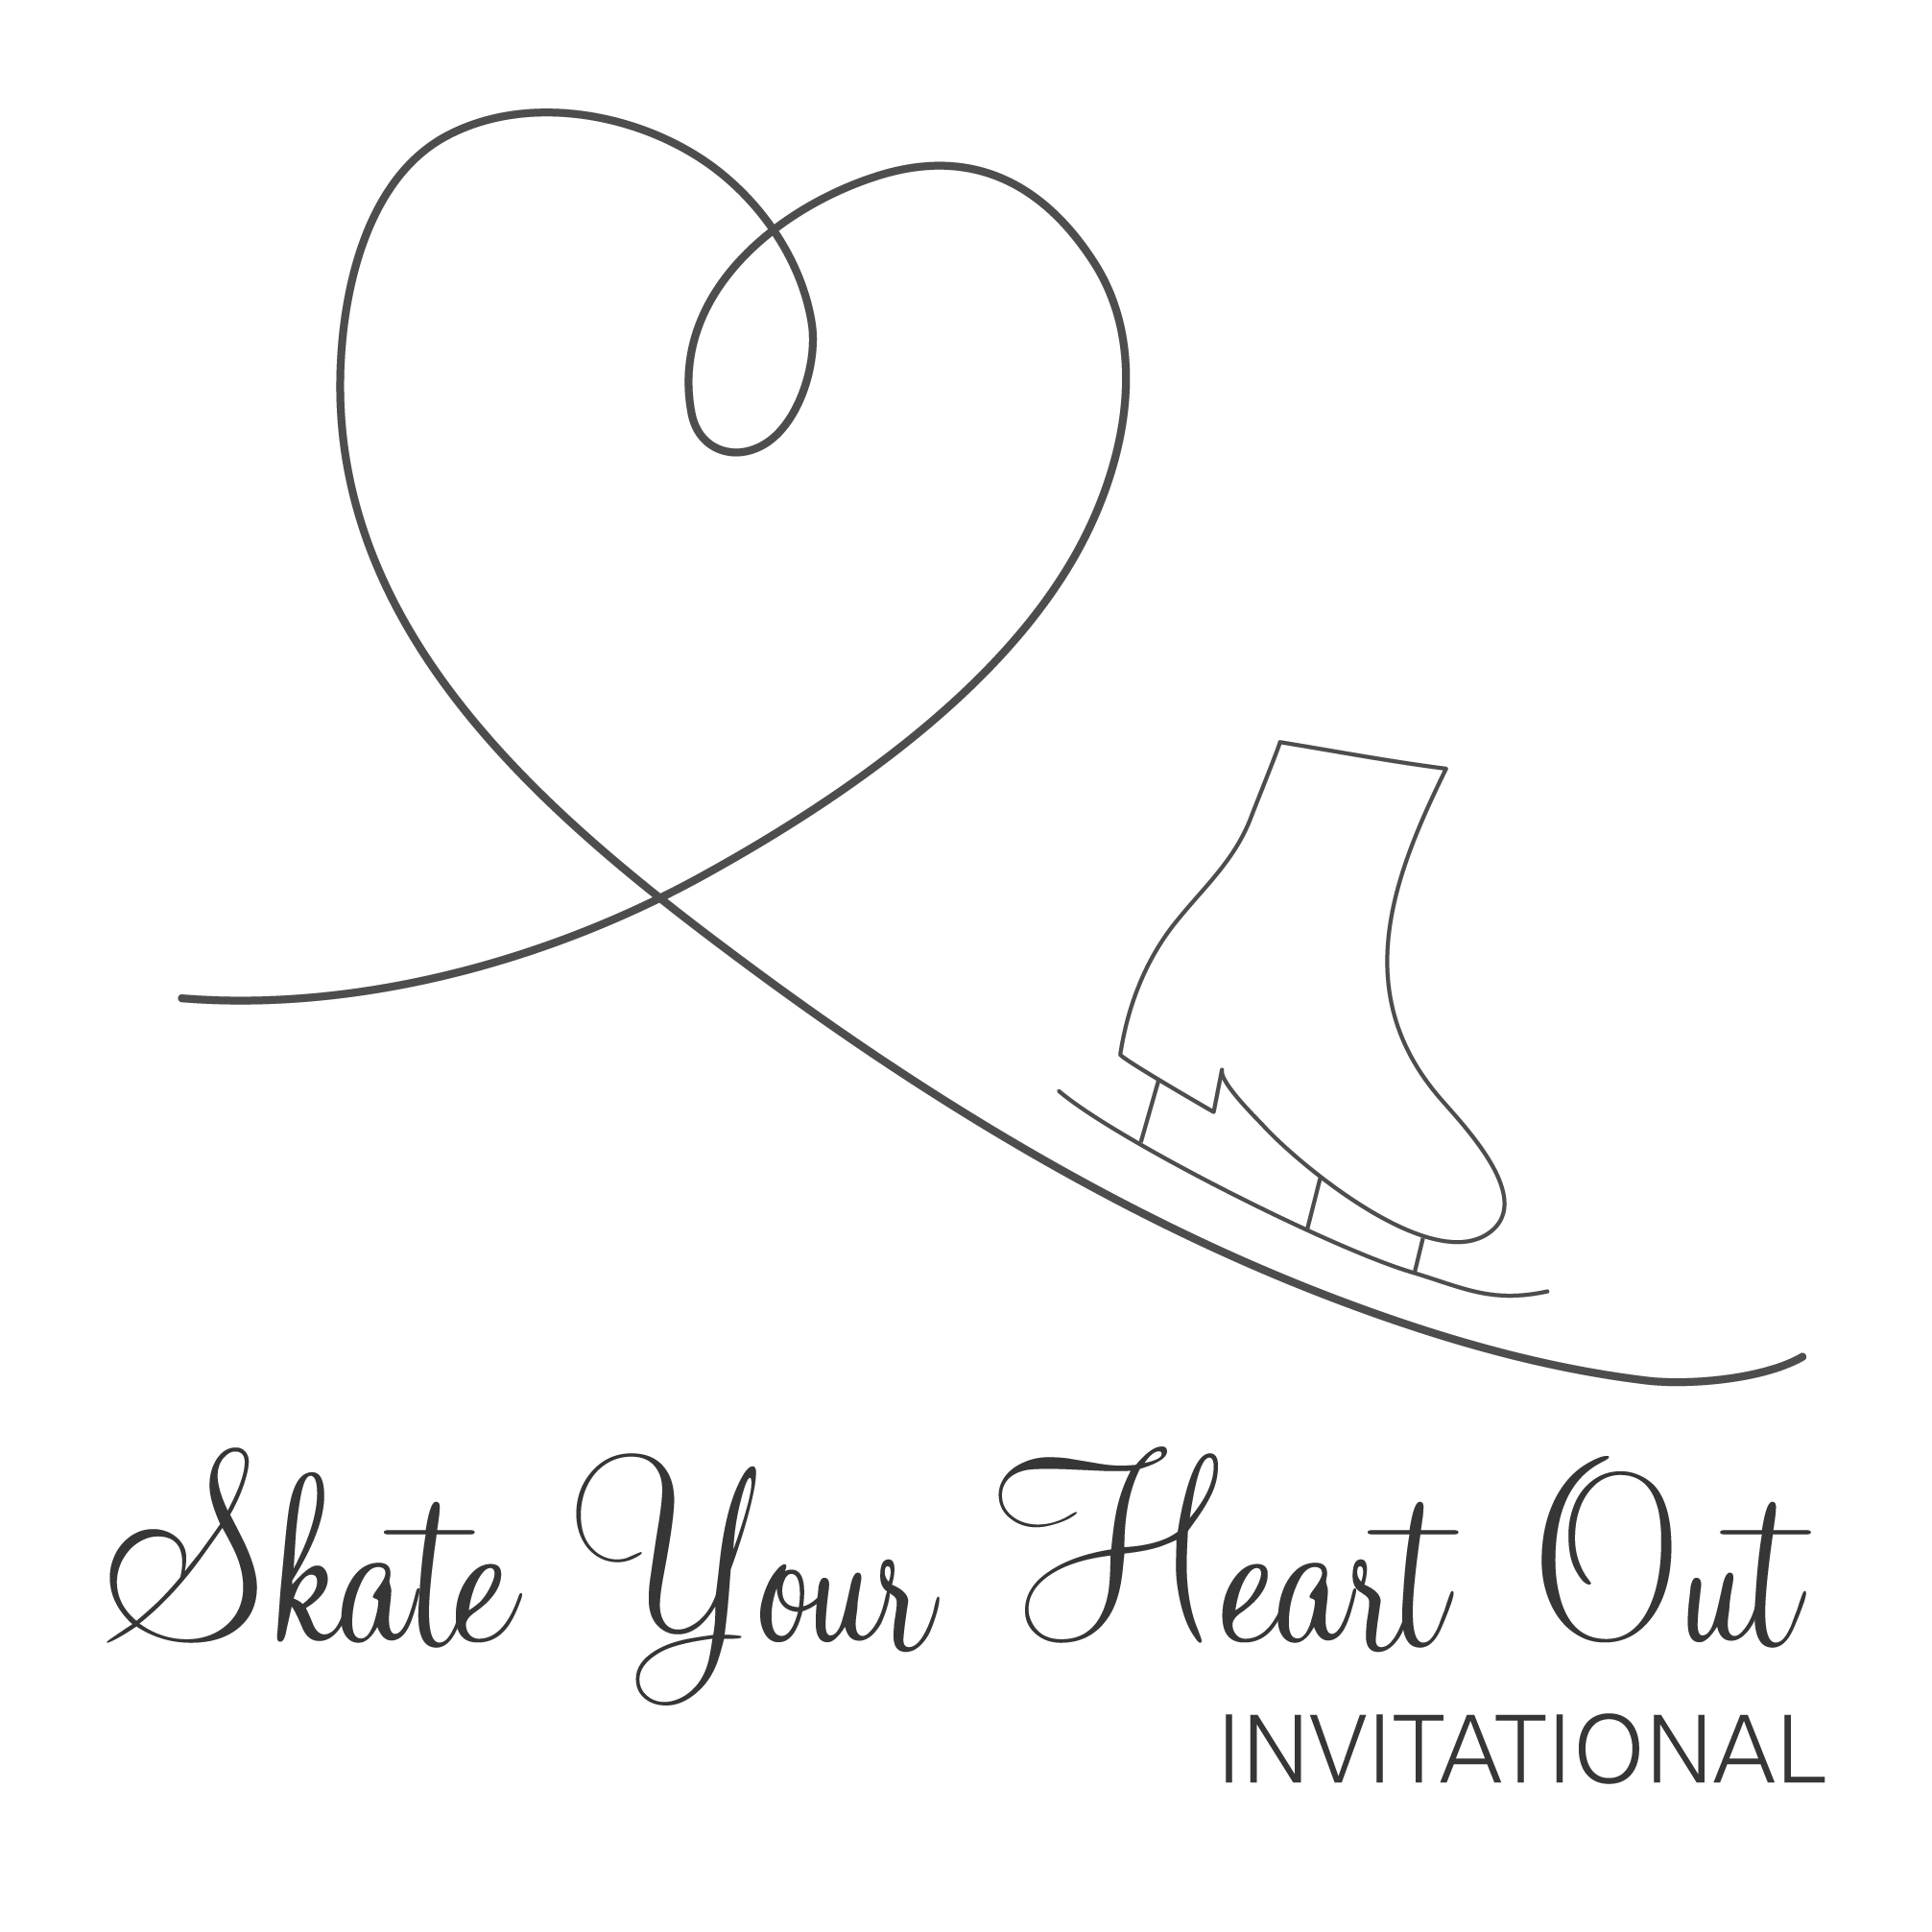 Good Luck To Sycamore Isc Skaters Competing This Sunday